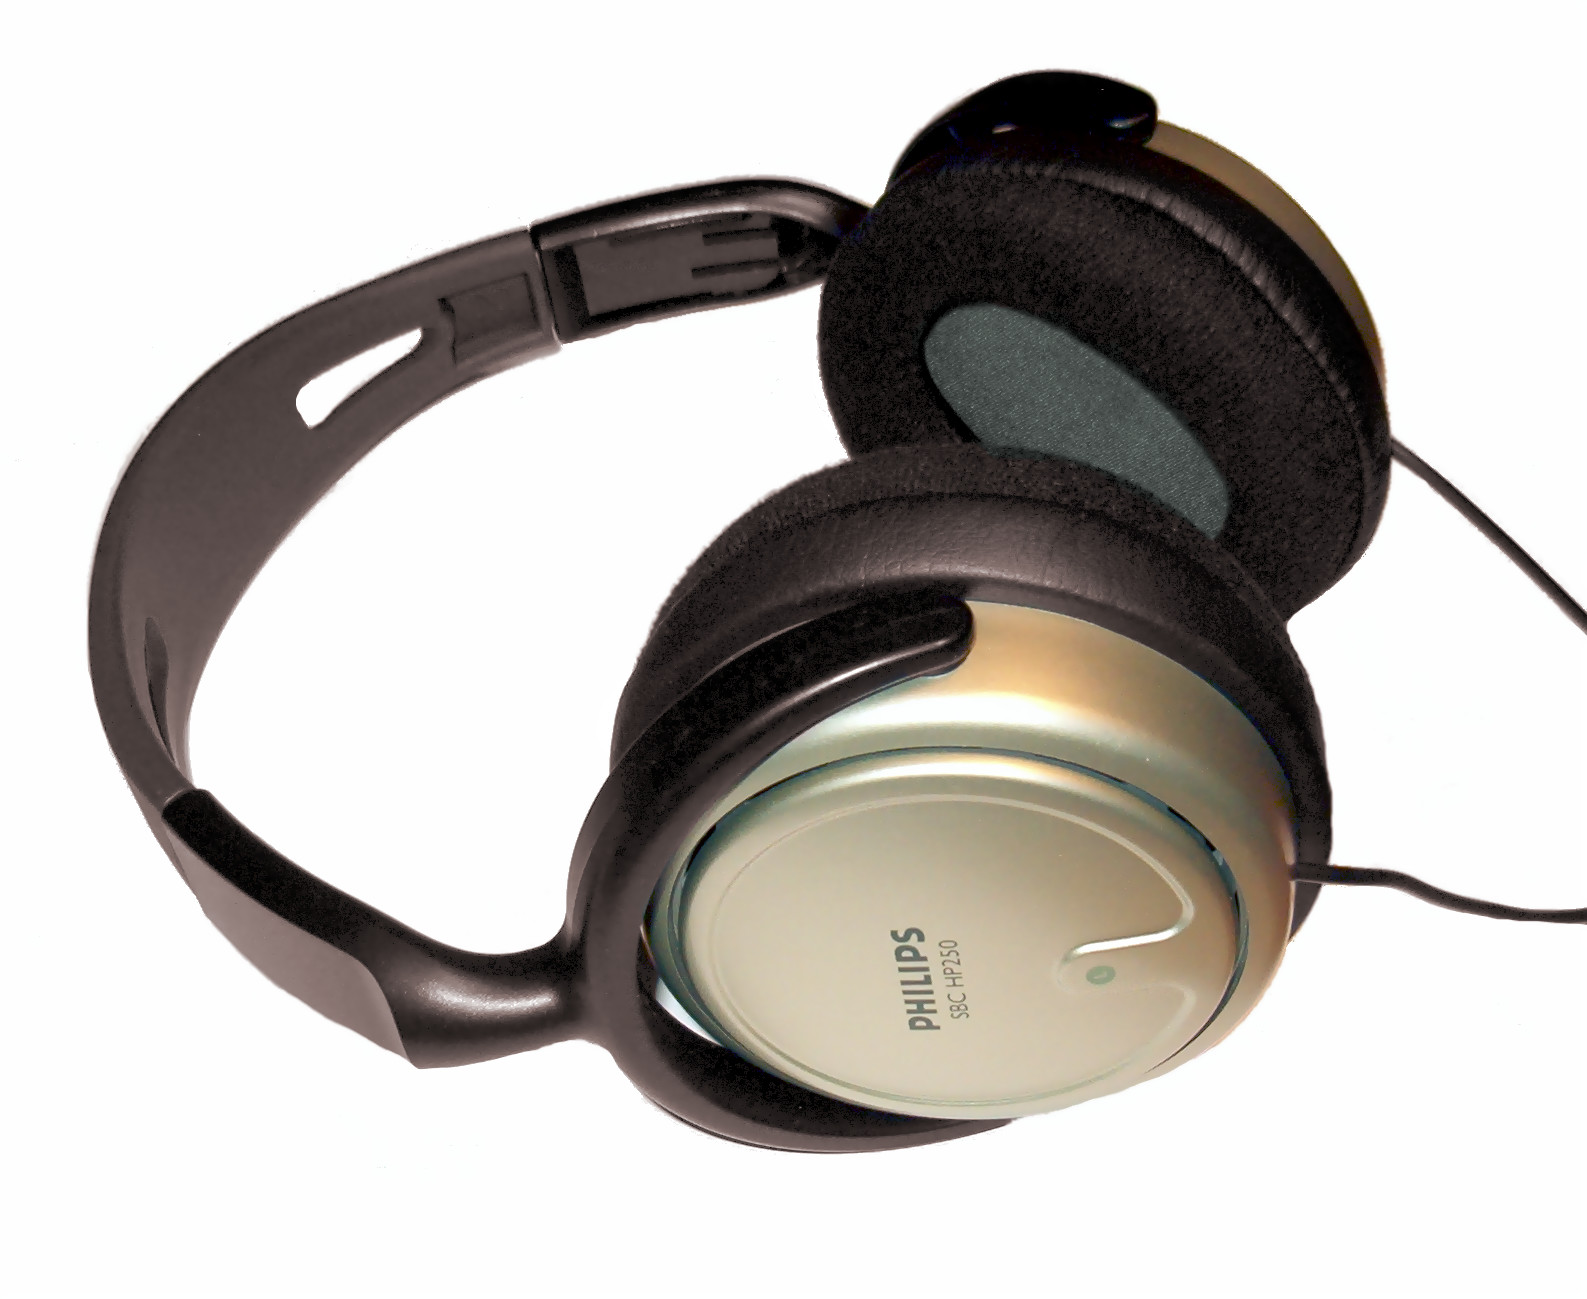 Philips-headphones.JPG